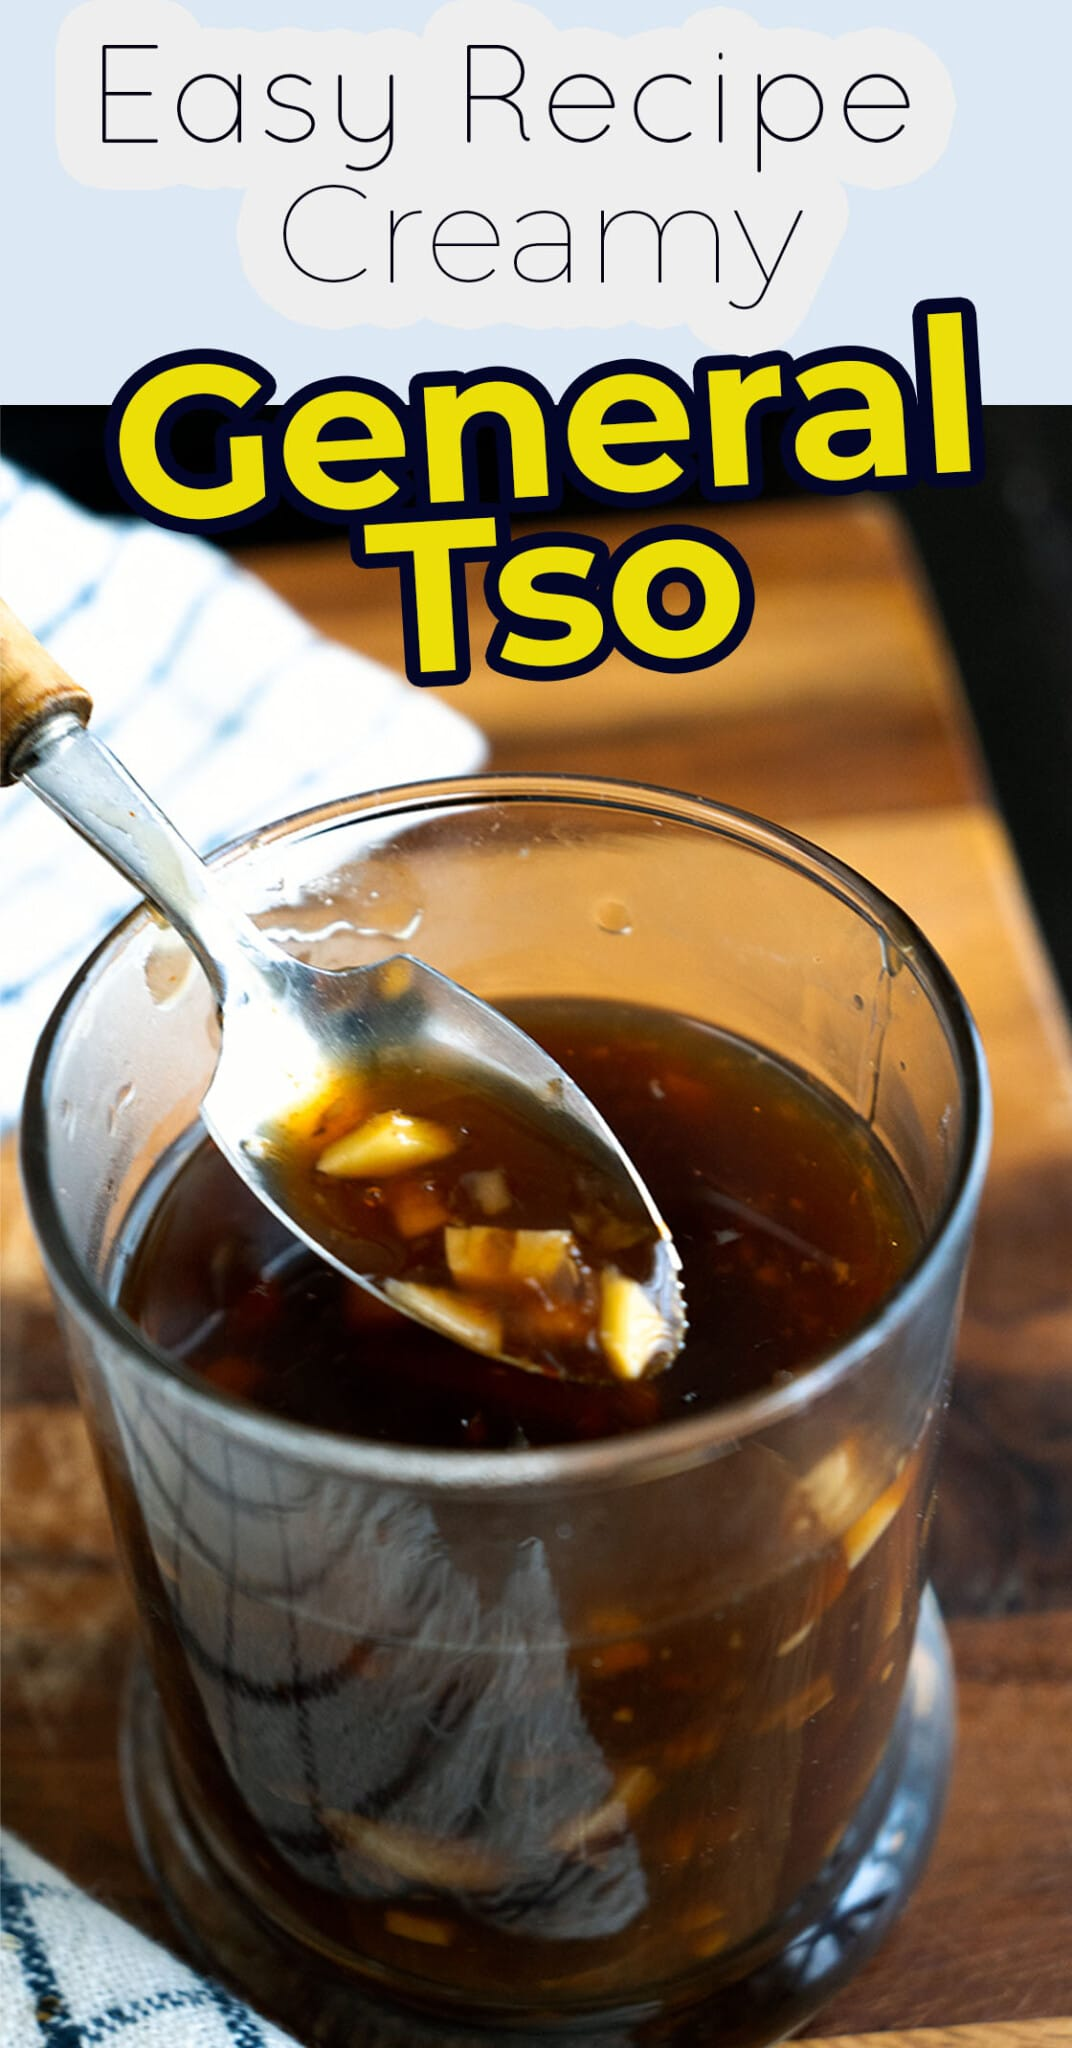 Recipe for General Tso Sauce. Uncomplicated, mouthwatering, luscious General Tso Sauce made at home. Made only of simple ingredients, No Hoisin Sauce Added. Better than take and perfect for any chicken cut of your choice.